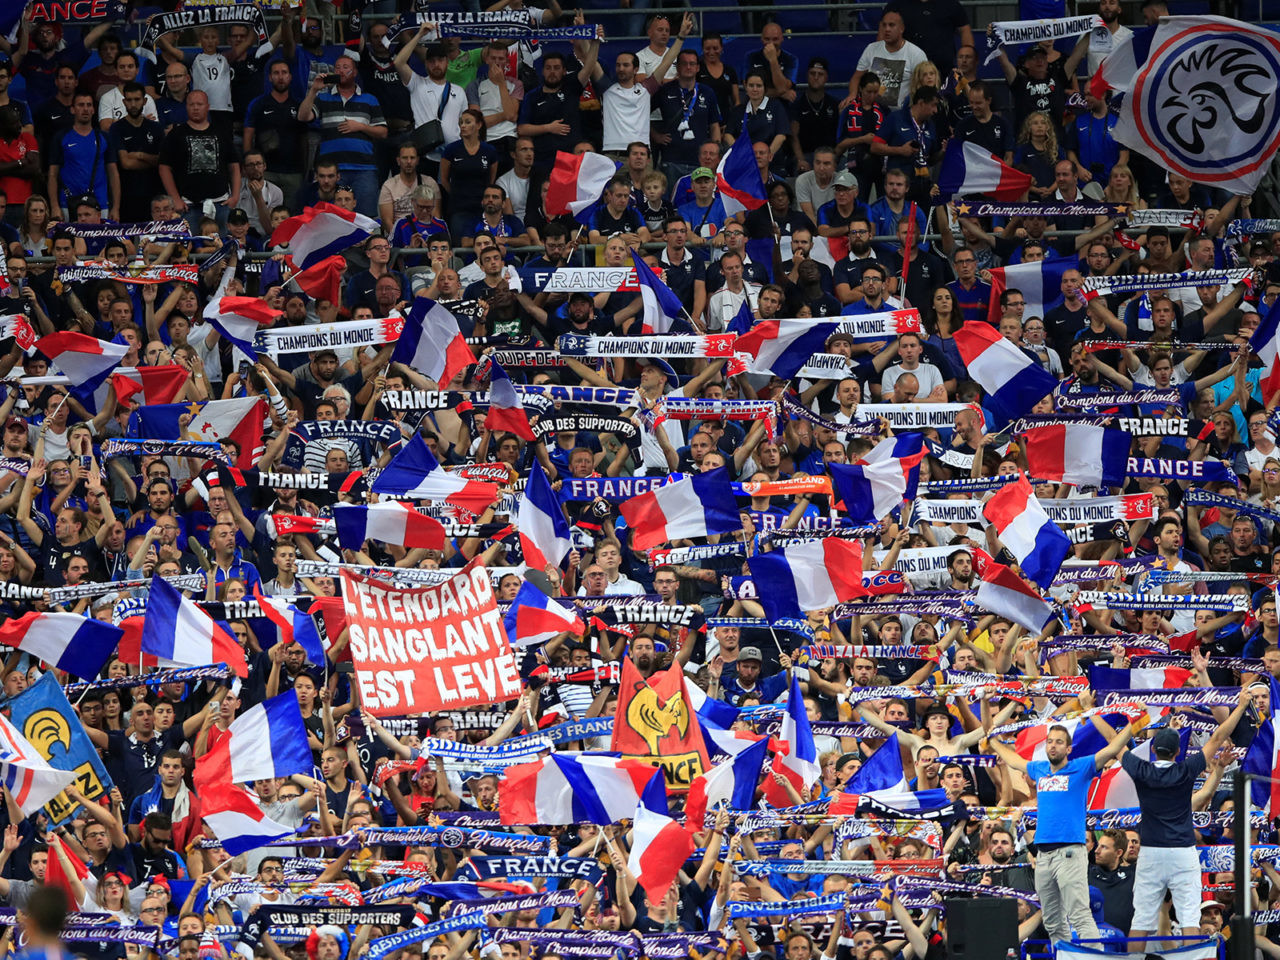 Soccer Football - UEFA Nations League - League A - Group 1 - France v Netherlands - Stade de France, Saint-Denis, France - September 9, 2018  France fans  REUTERS/Gonzalo Fuentes